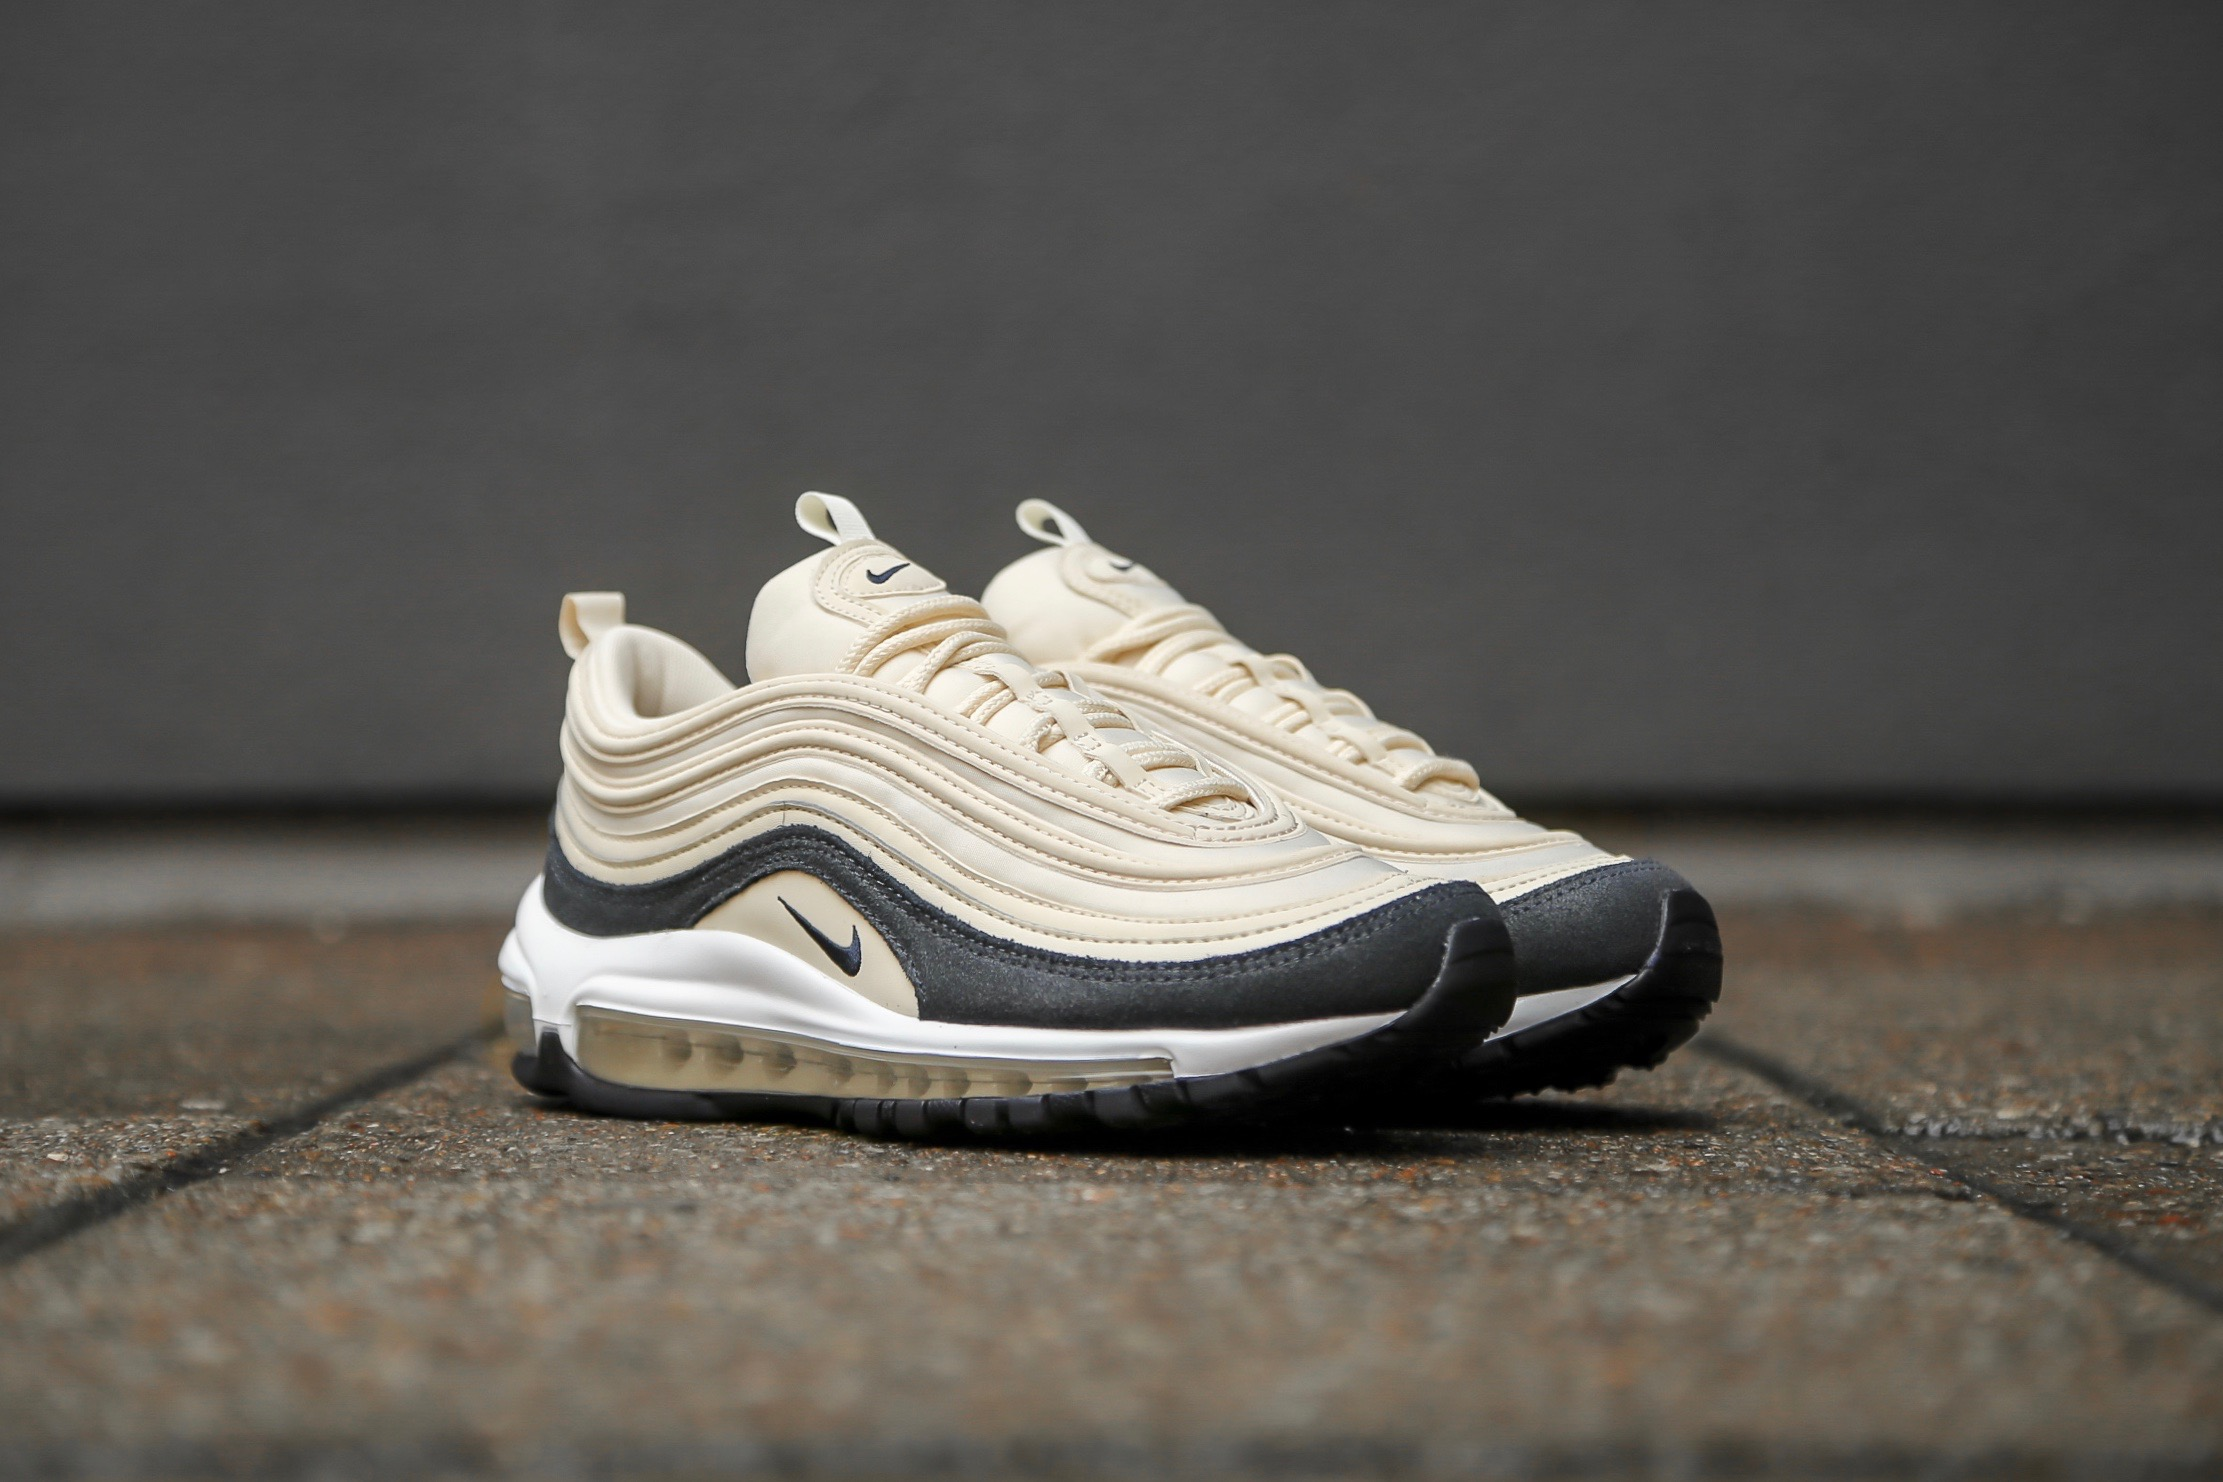 a2c63fa3a2 Nike W Air Max 97 PRM – Light Cream / Oil Grey – STASP